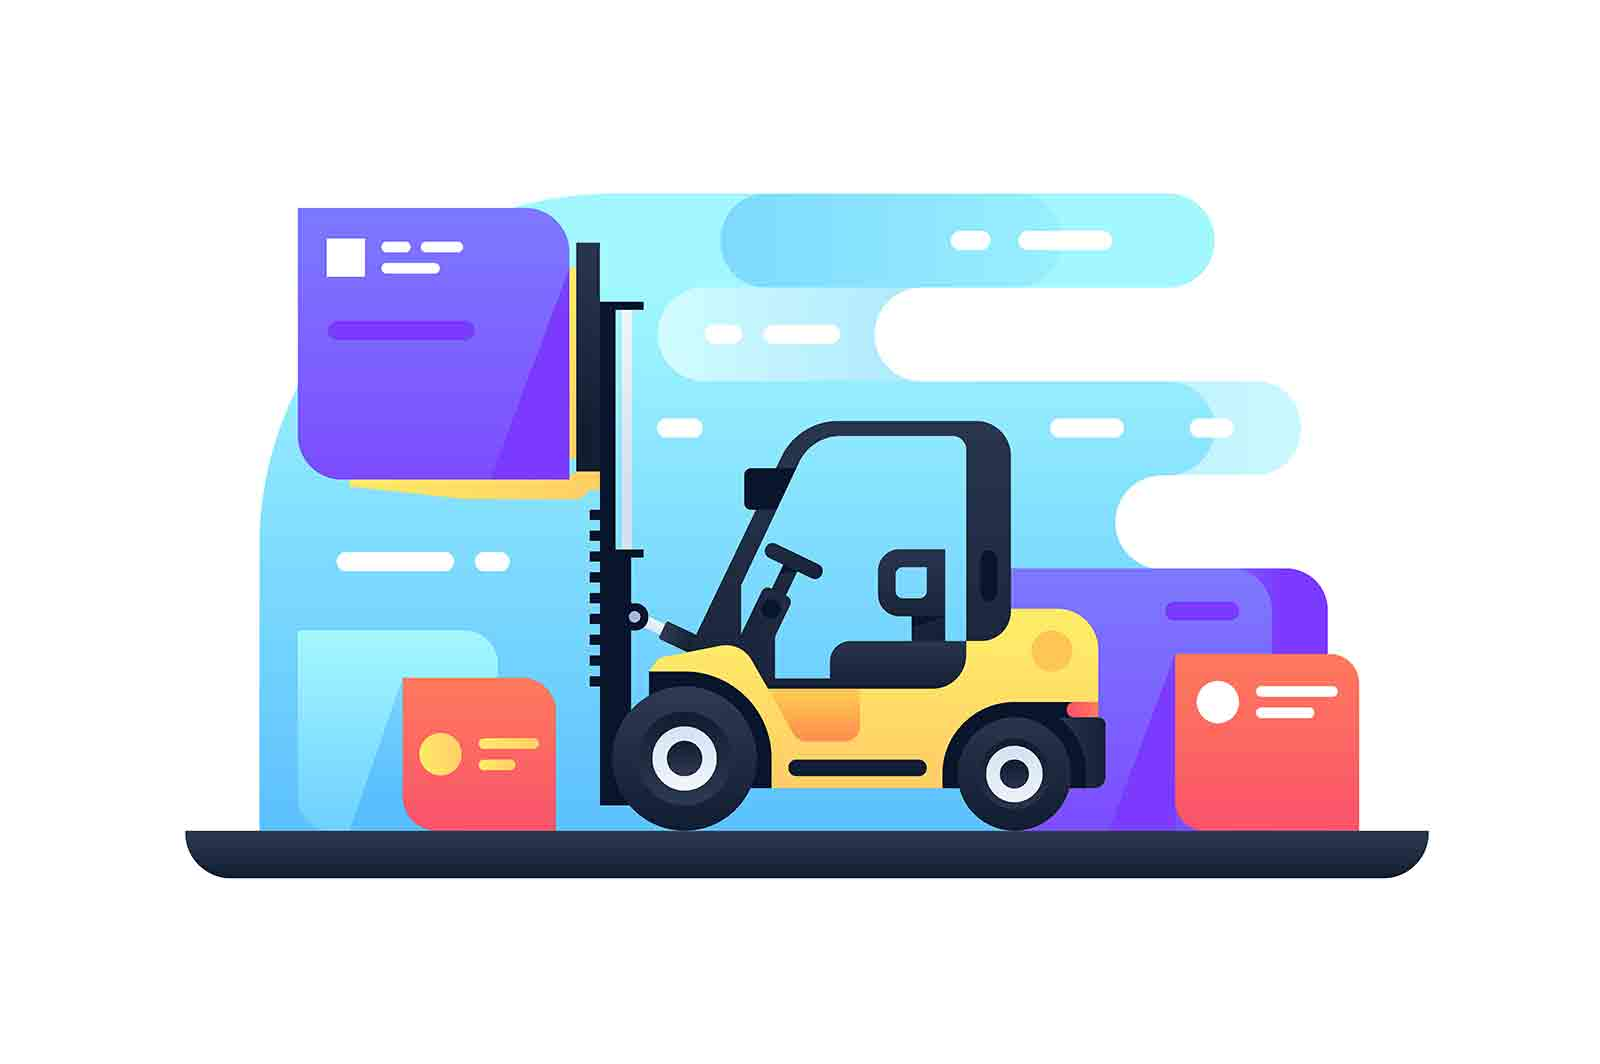 Forklift in stock vector illustration. Machine stacking pallets with boxes by stacker loader flat style. Modern technology. Logistic and goods concept.